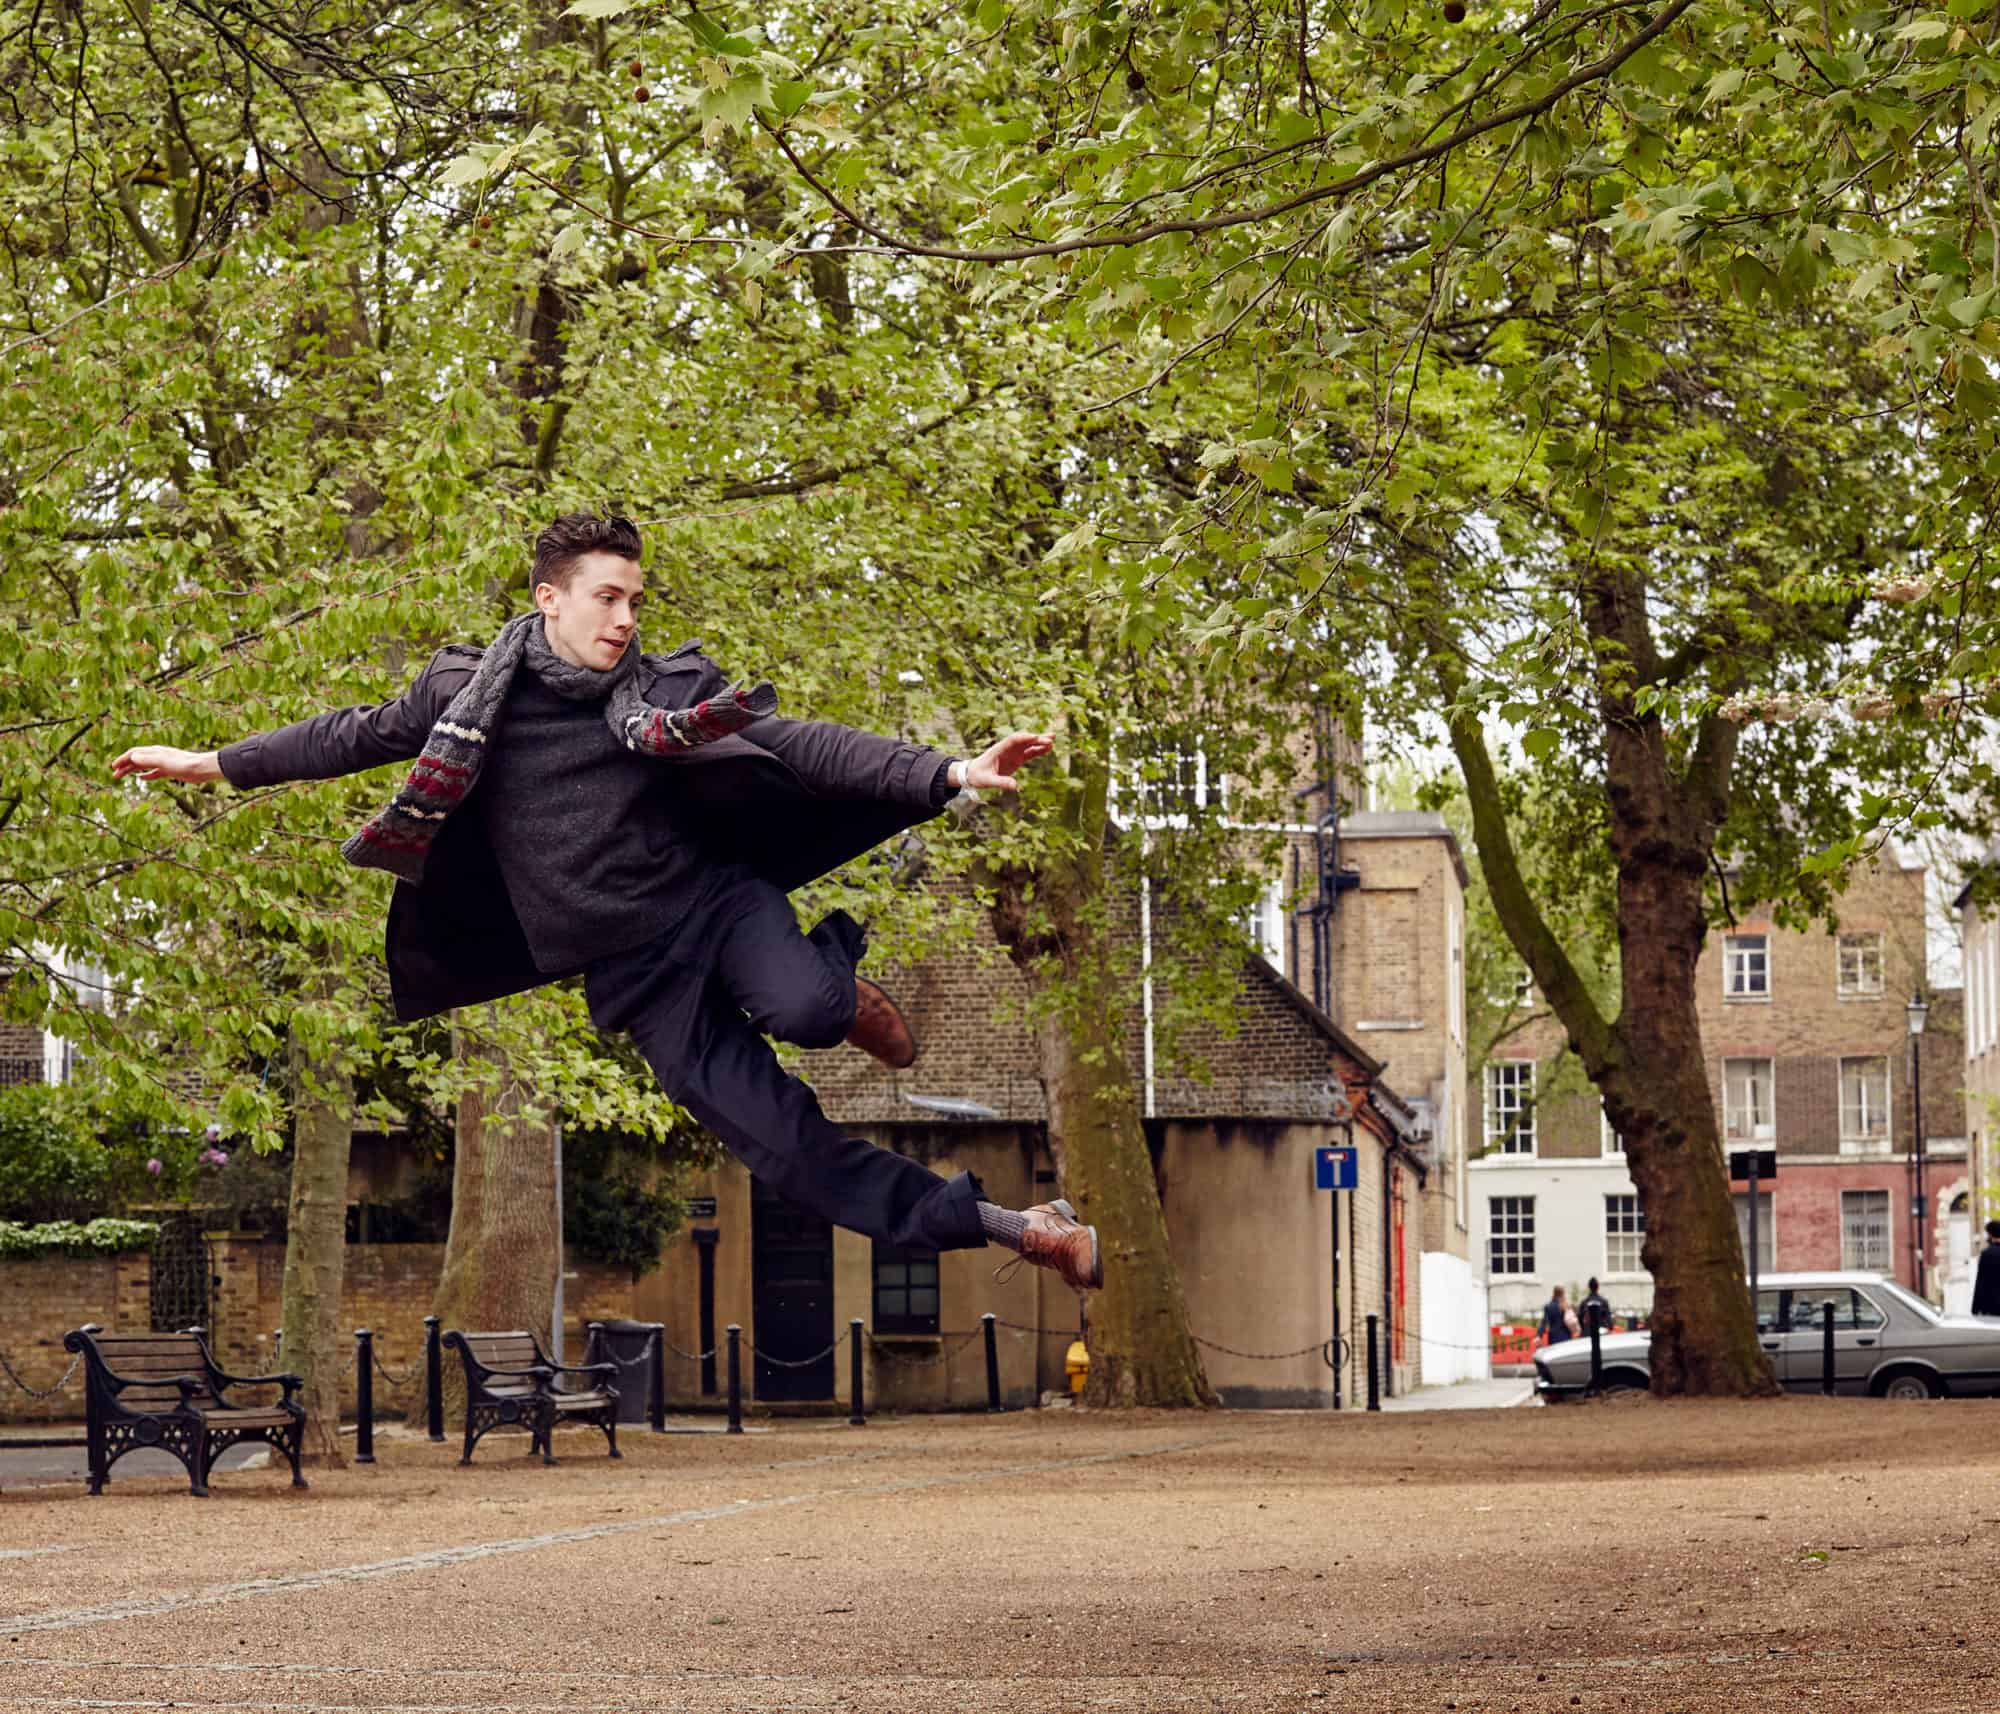 """Movement portrait. Man jumps high and gracefully in leafy square. Wearing winter coat and brown brogues. Car in background."""